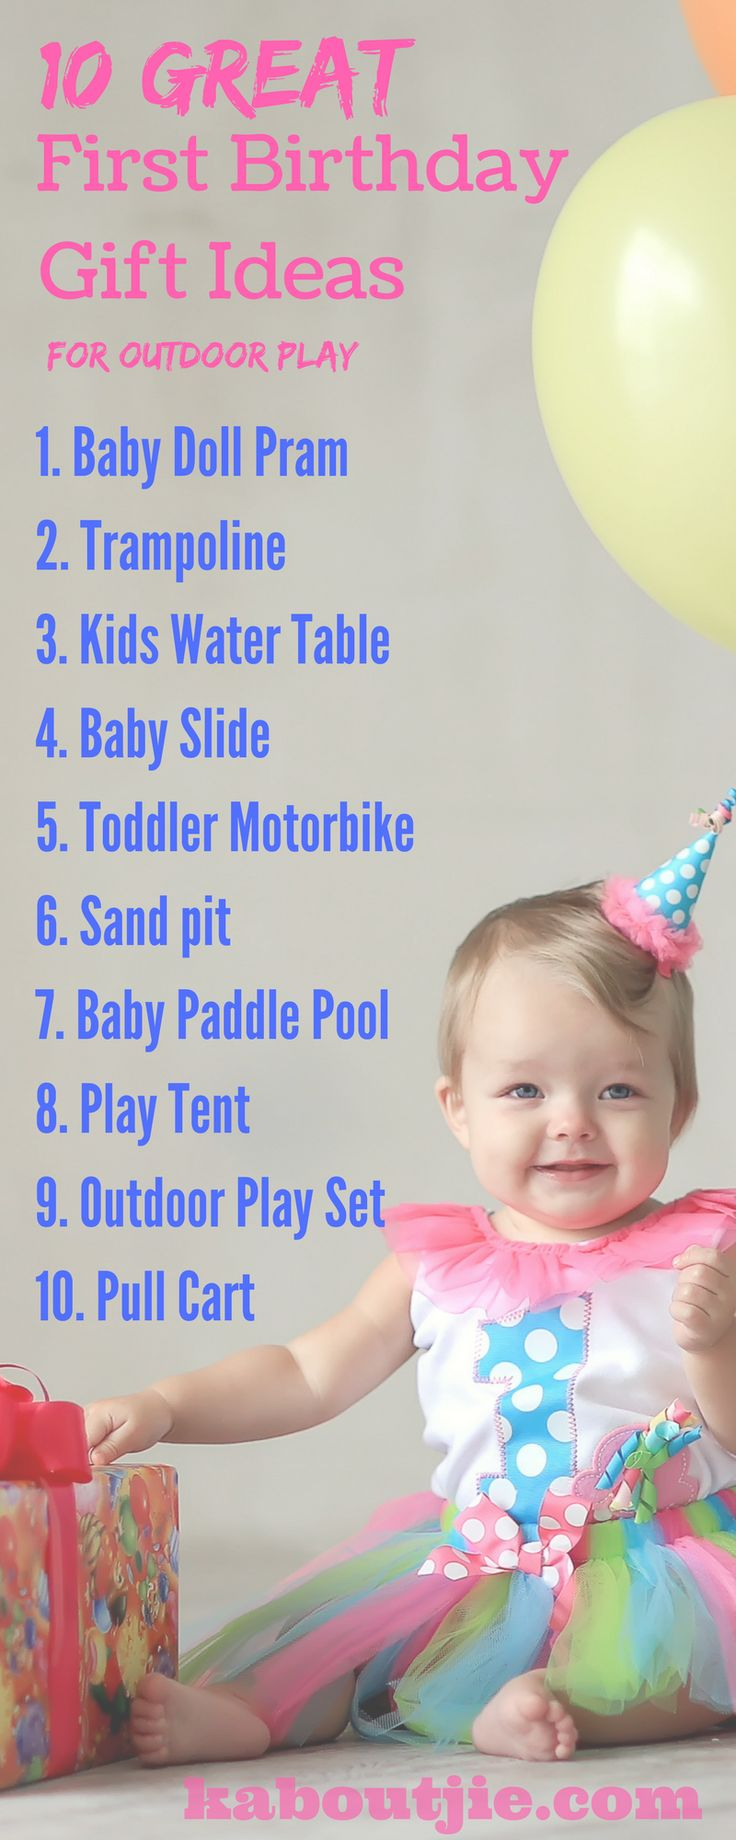 Buying your child's first birthday gift is a momentous occasion. The best type of gift will keep your child entertained, be educational, encourage your child to be active and play outdoors.   Here are 10 Great First Birthday Gift Ideas for Outdoor Play that your child will love and use for a long time to come:  #FirstBirthdayGift #FirstBirthdayGiftIdeas #BirthdayGifts #Trampoline #BabyDollStroller #KidsSandPit #KidsWaterTable #Birthday